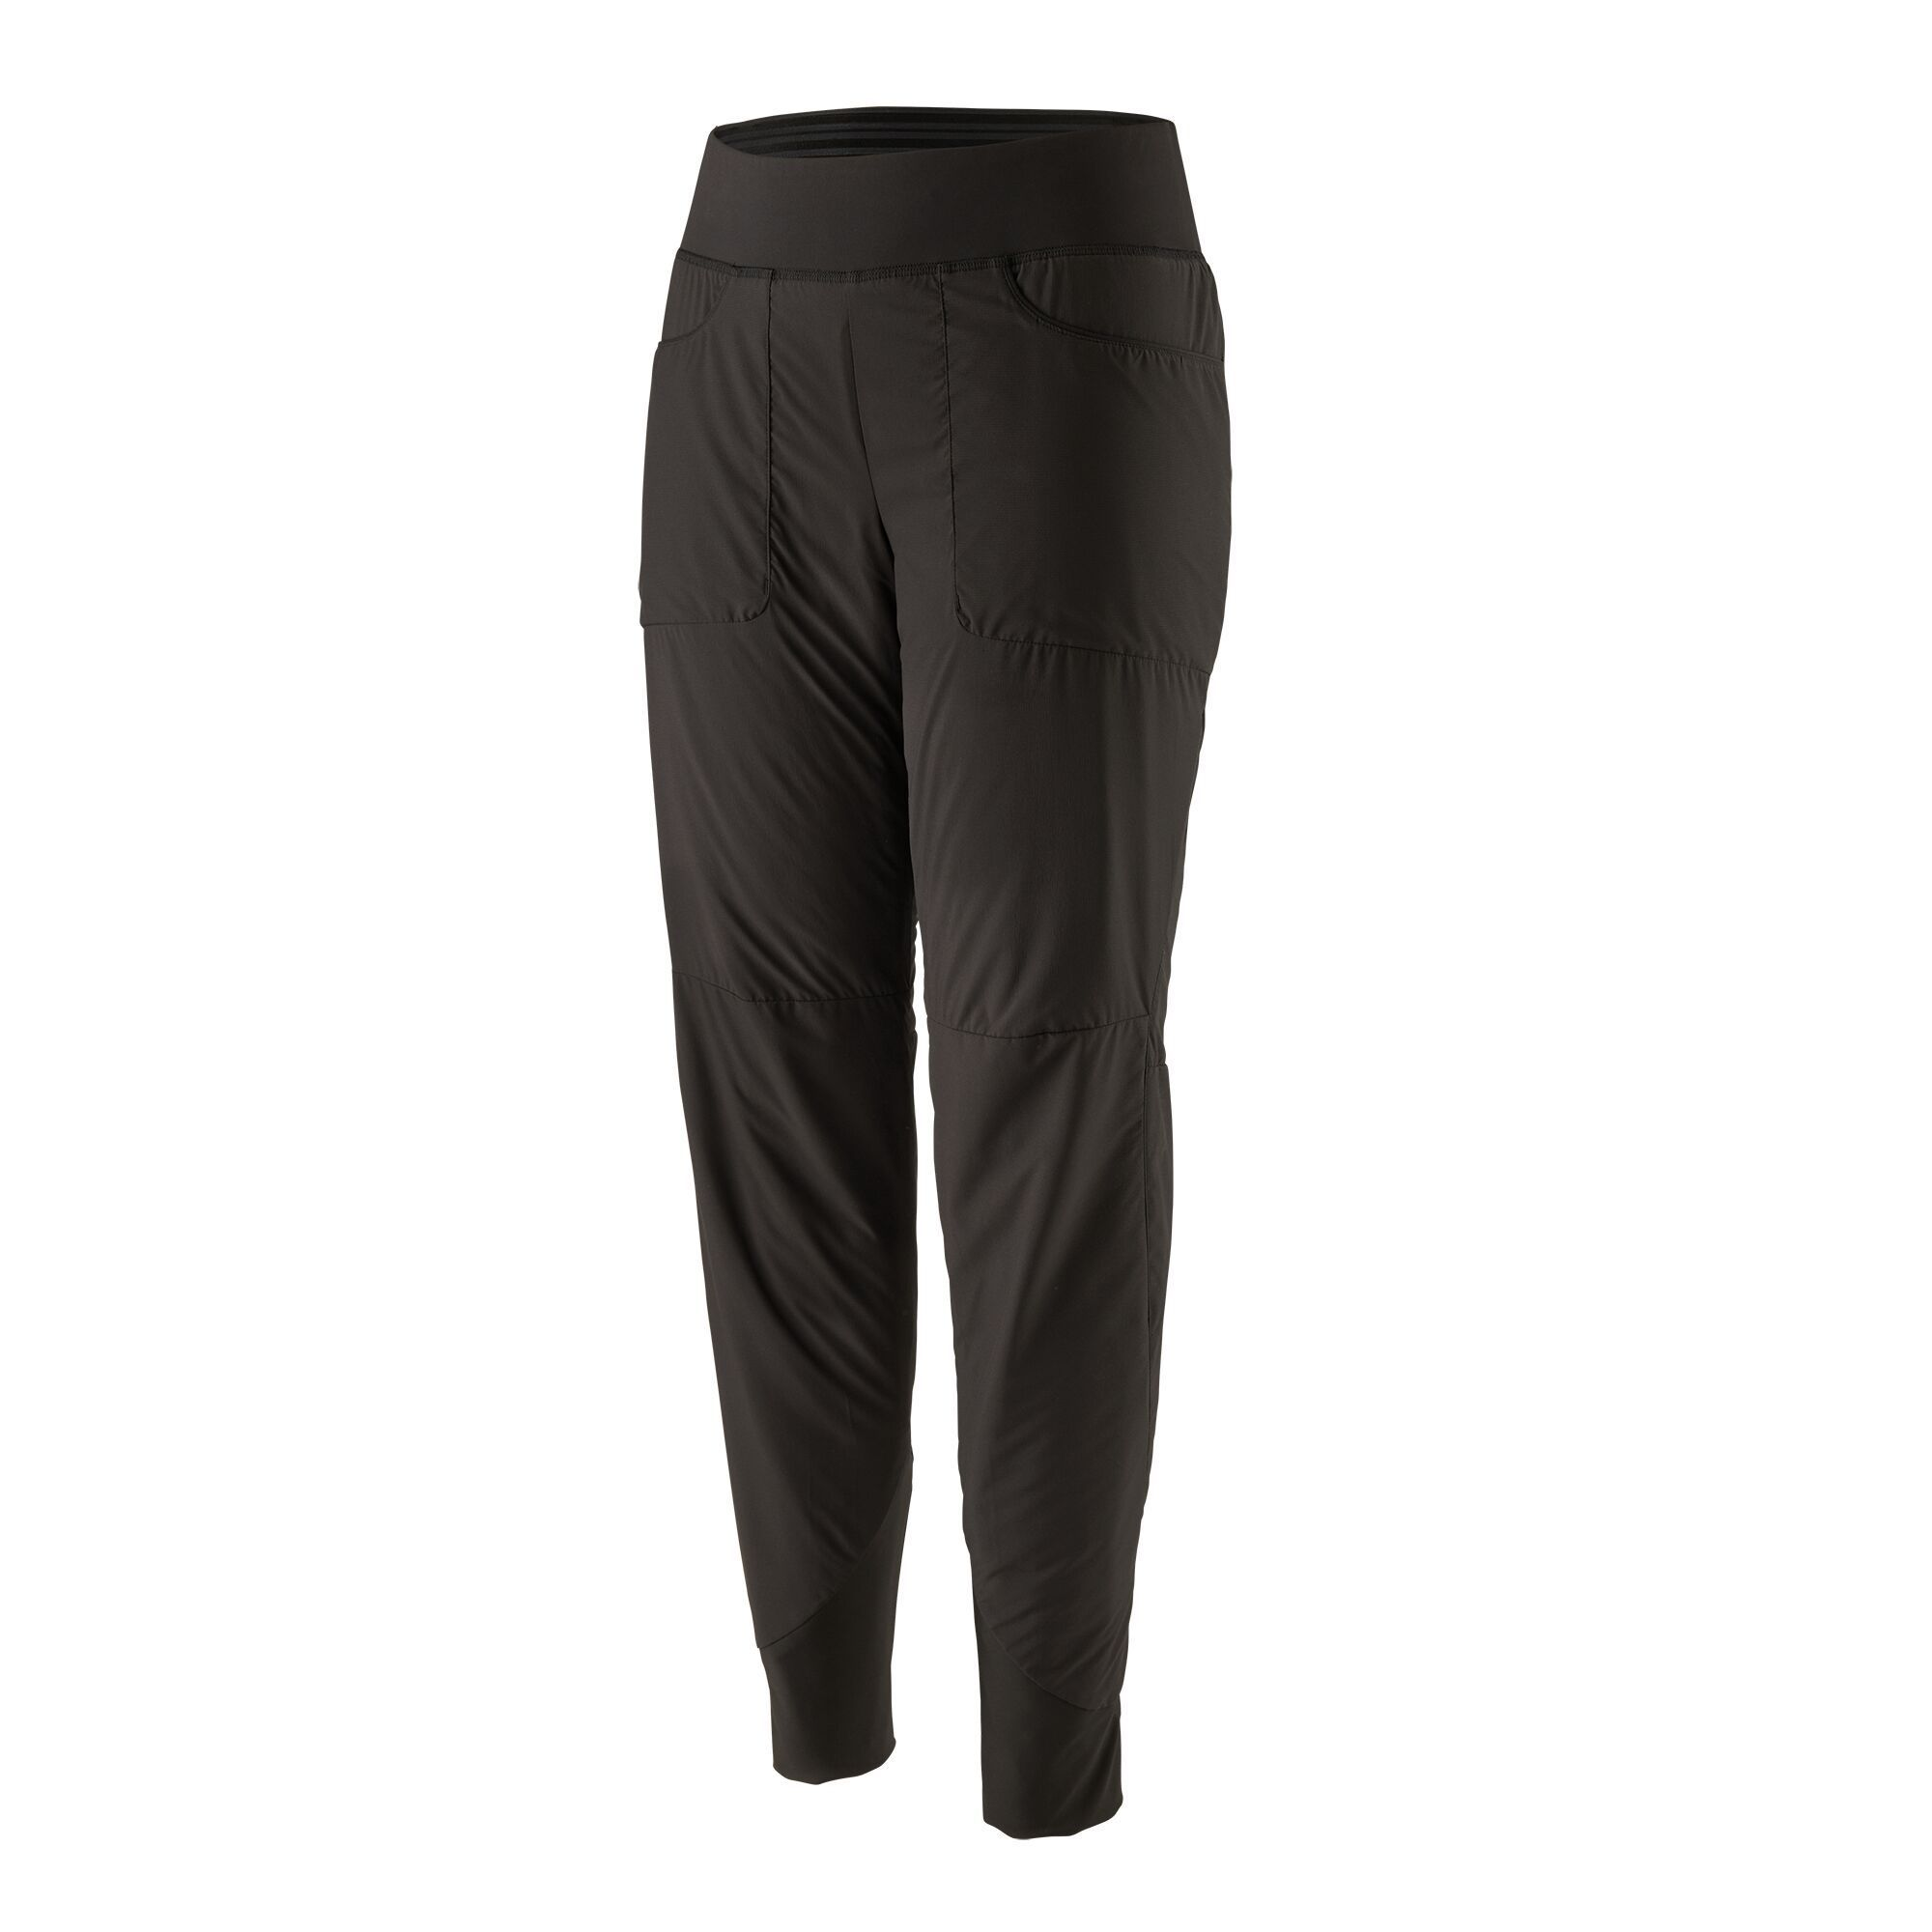 Patagonia - Women's Nano-Air® Pants - Black - Recycled Polyester - Weekendbee - sustainable sportswear